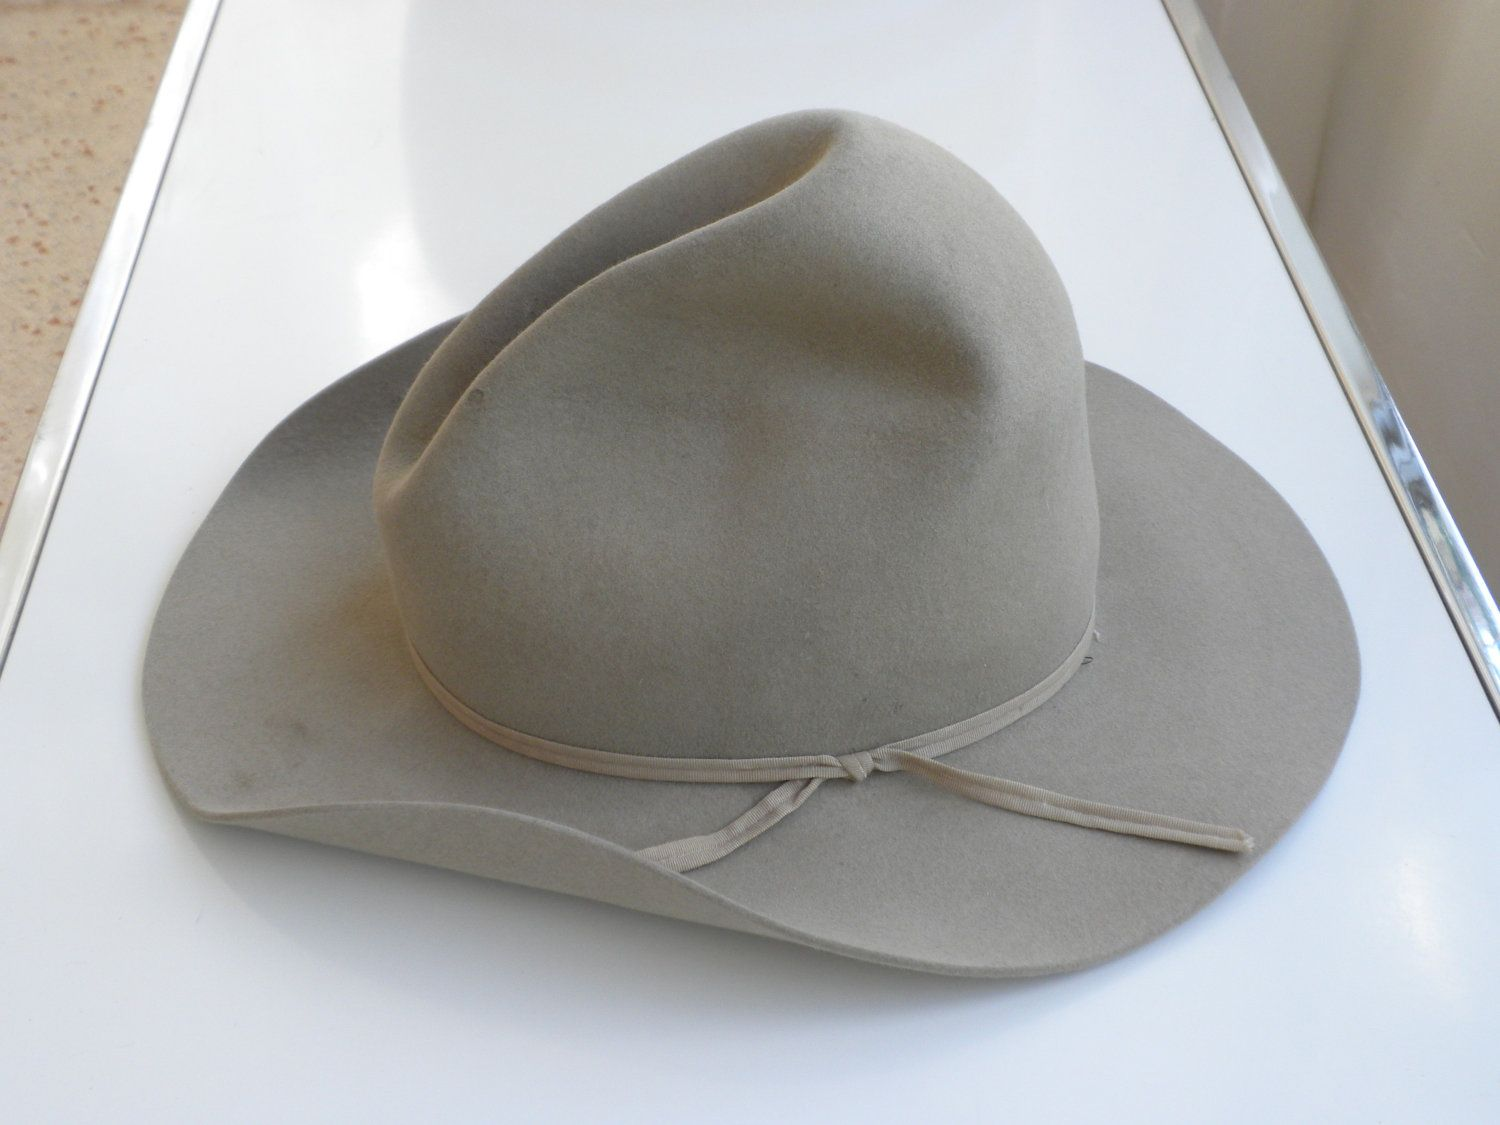 This Is A Genuine Western Hat In The Tom Mix Style Made By The Resistol Company Of Garland Texas The Larges Cowboy Hats Felt Cowboy Hats Resistol Cowboy Hat